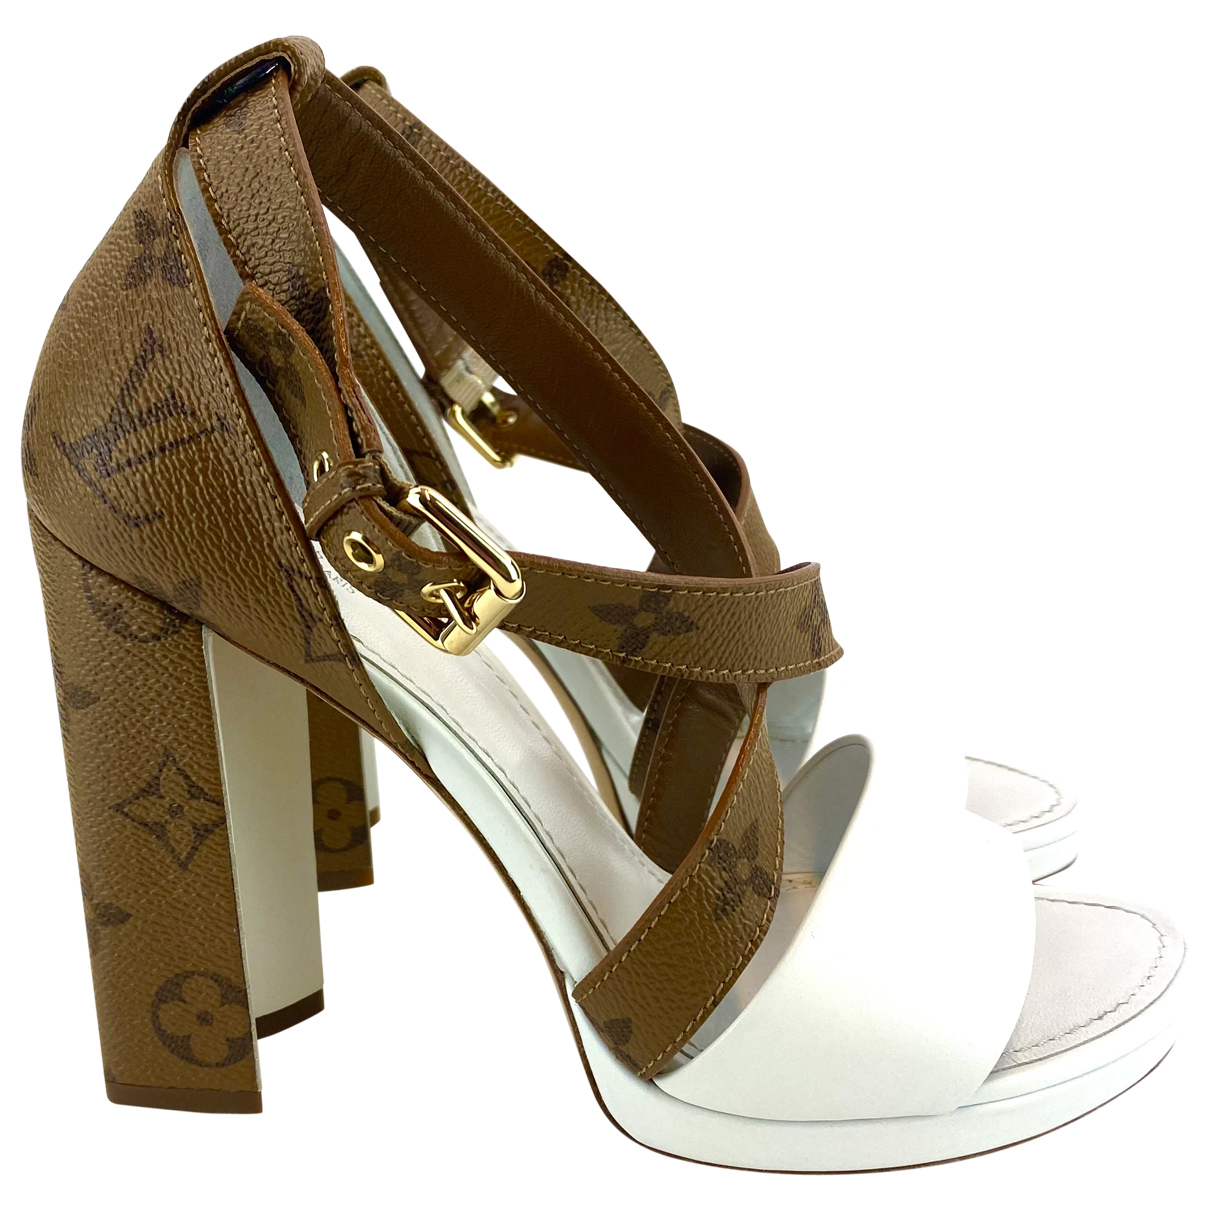 Louis Vuitton \N Sandalen in  Beige Leinen